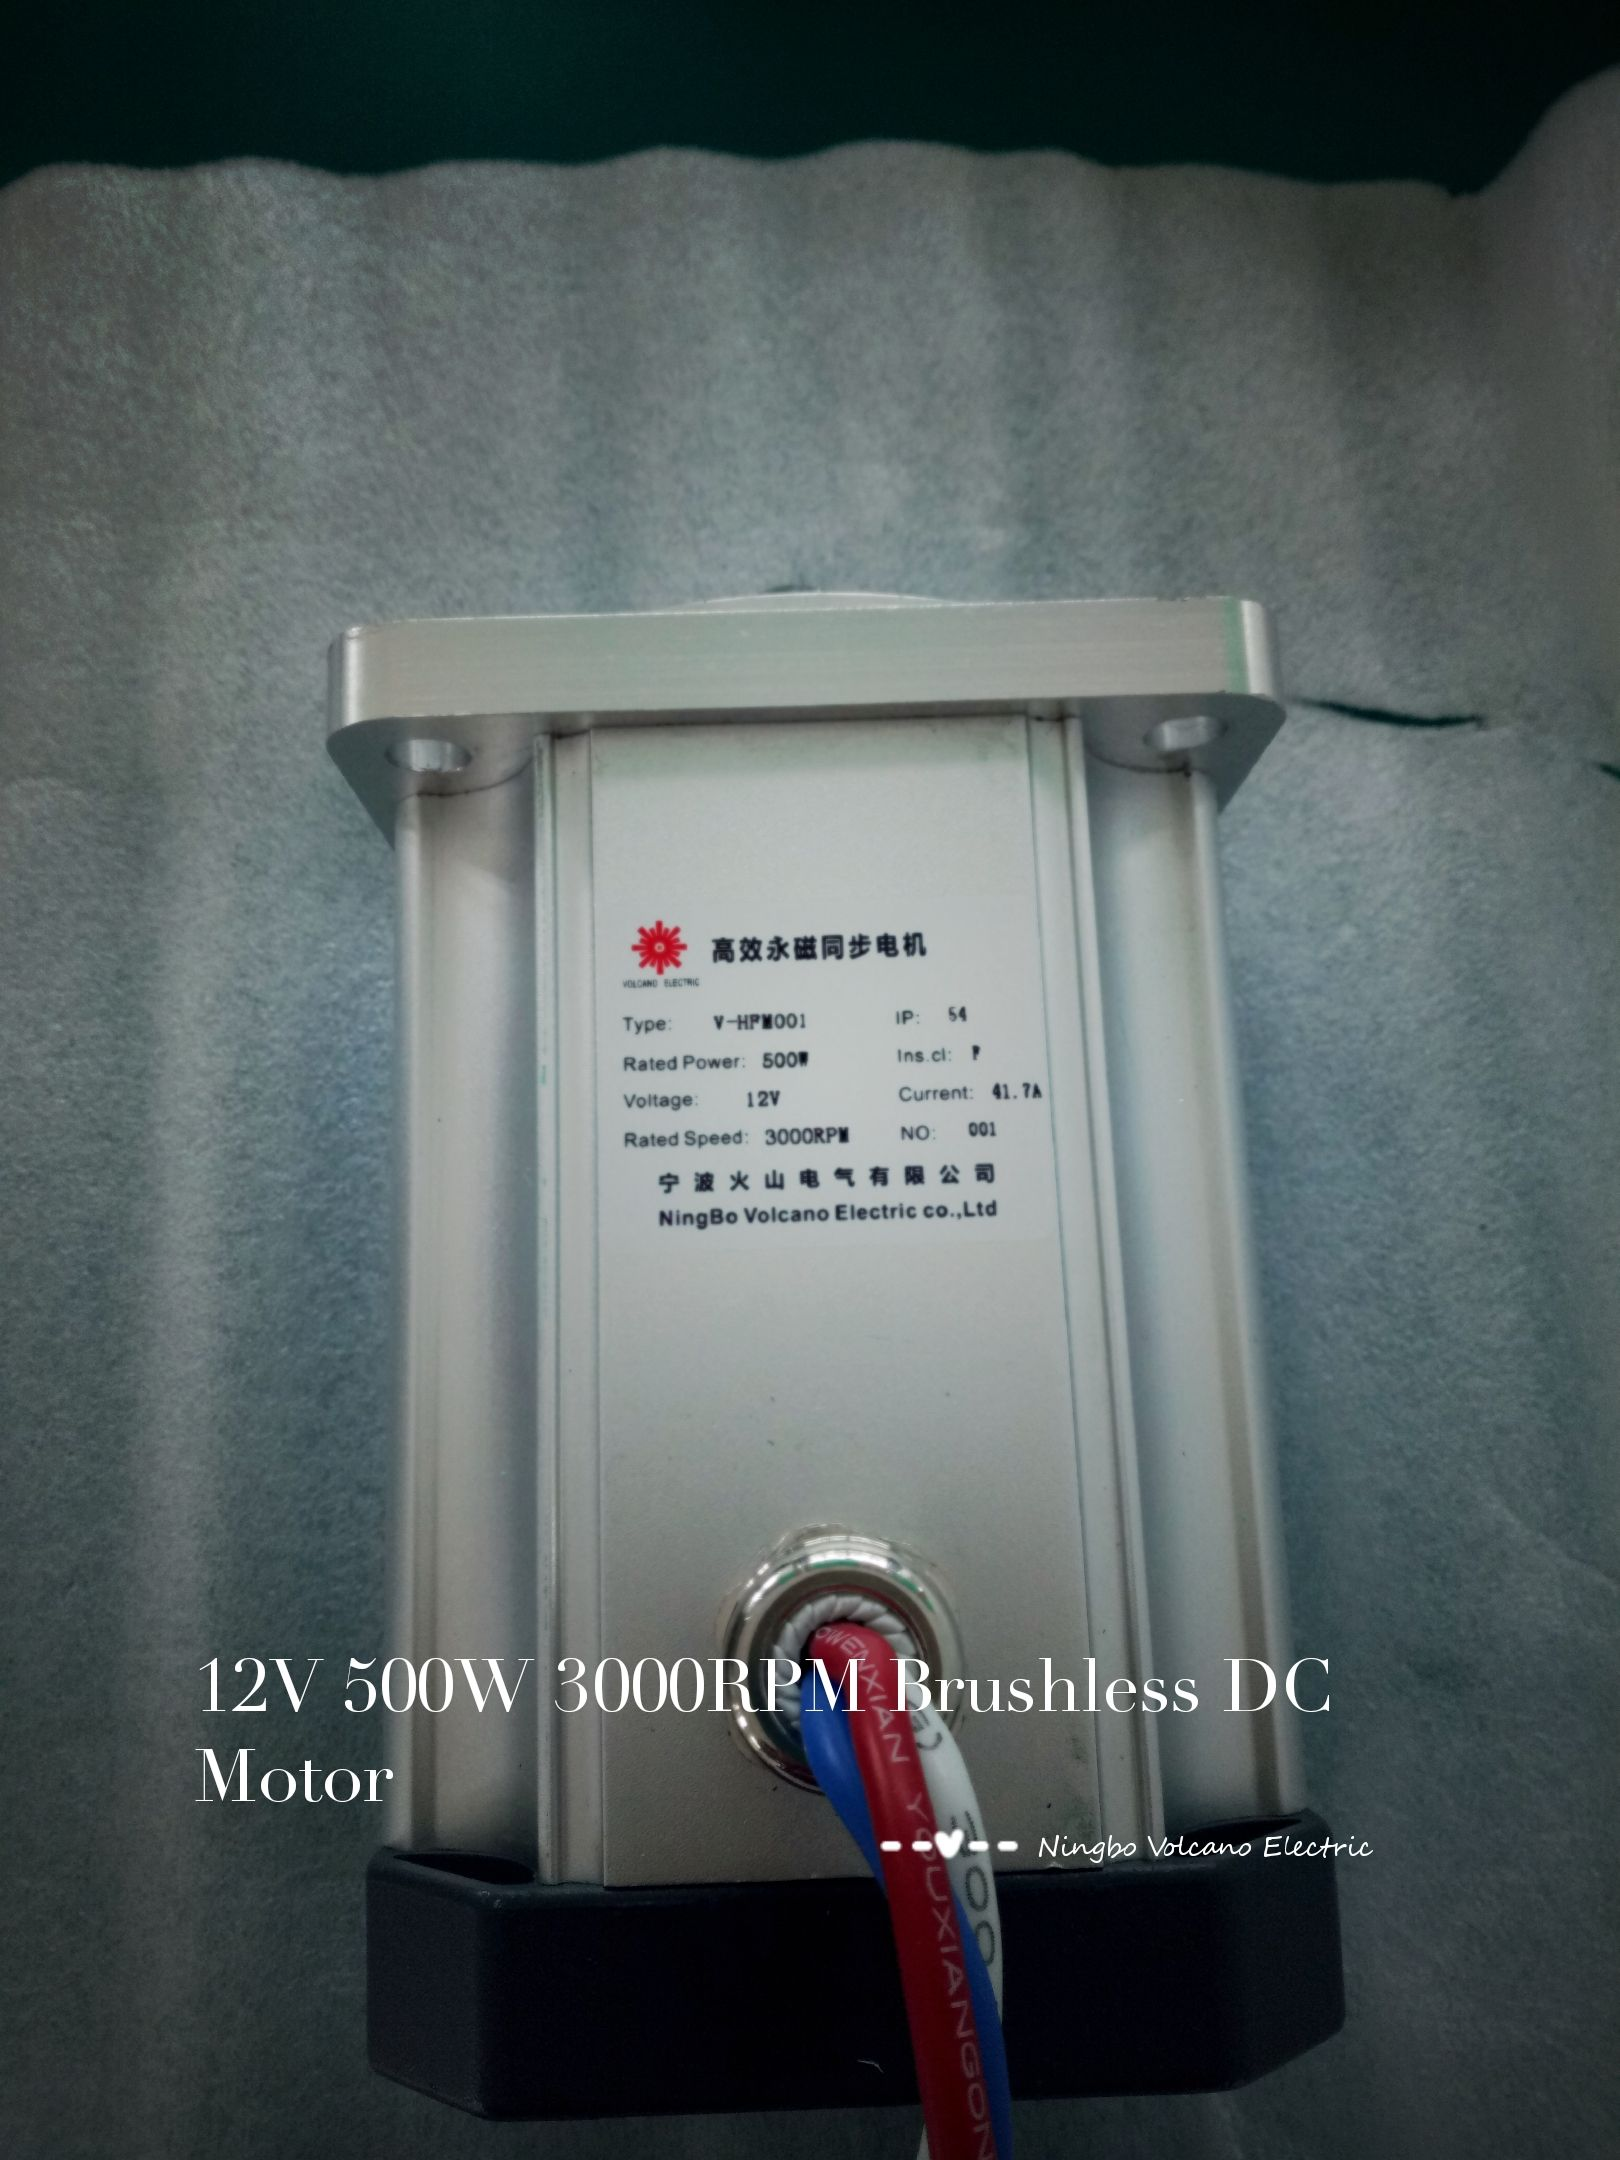 Voltage: 12V Rated power: 500W Rated speed: 3000rpm Efficiency: 89